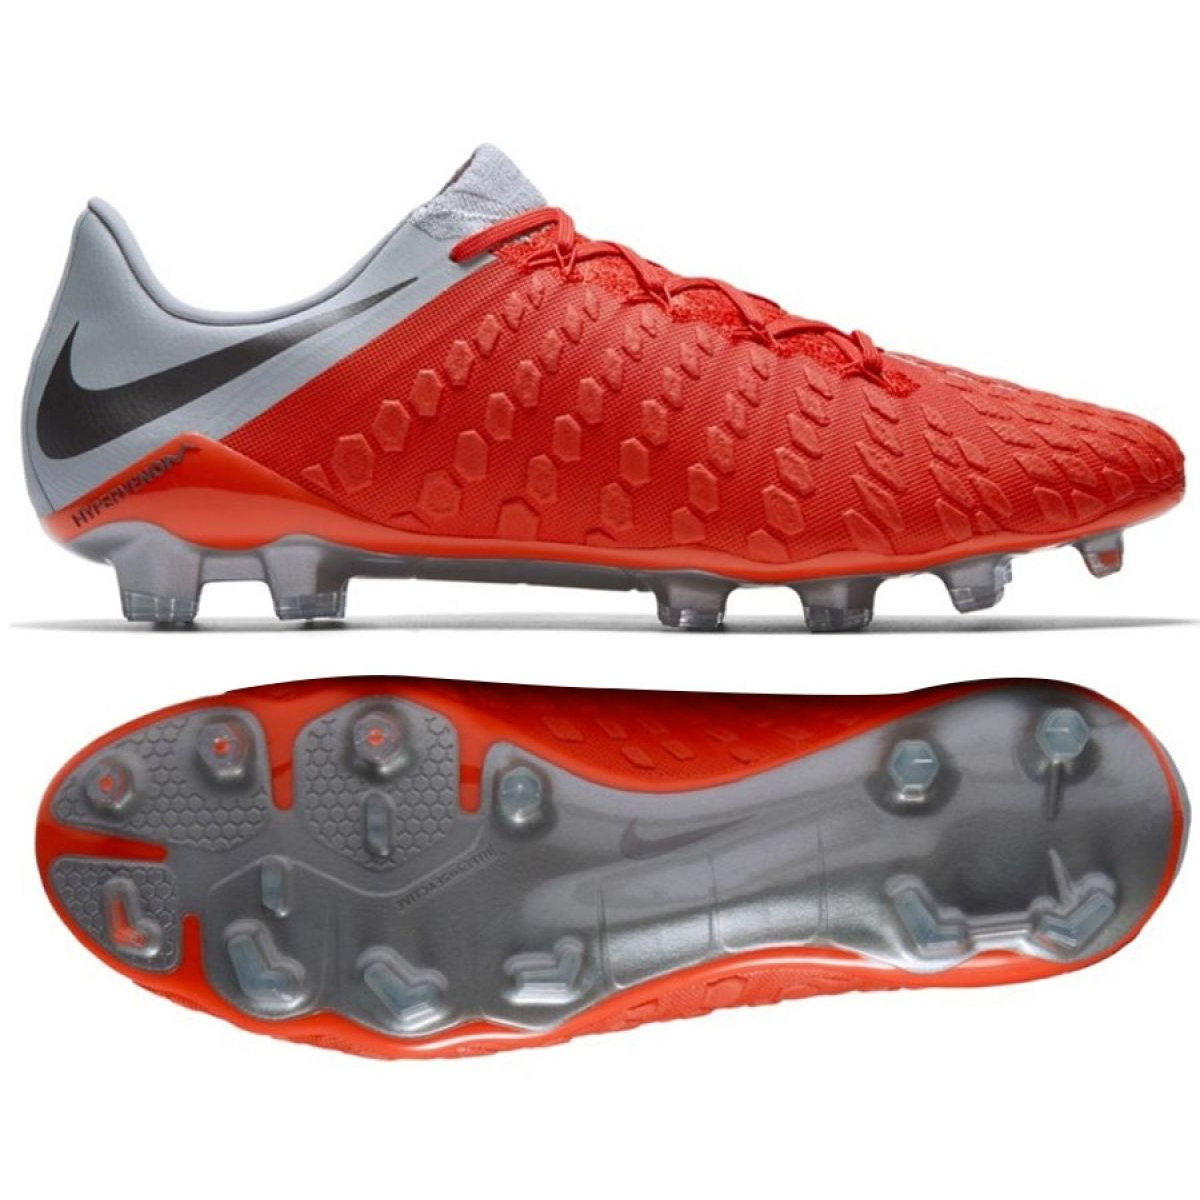 nouveau style 4b8af e840d Football shoes Nike Hypervenom Phantom 3 Elite Fg M AJ3805-600